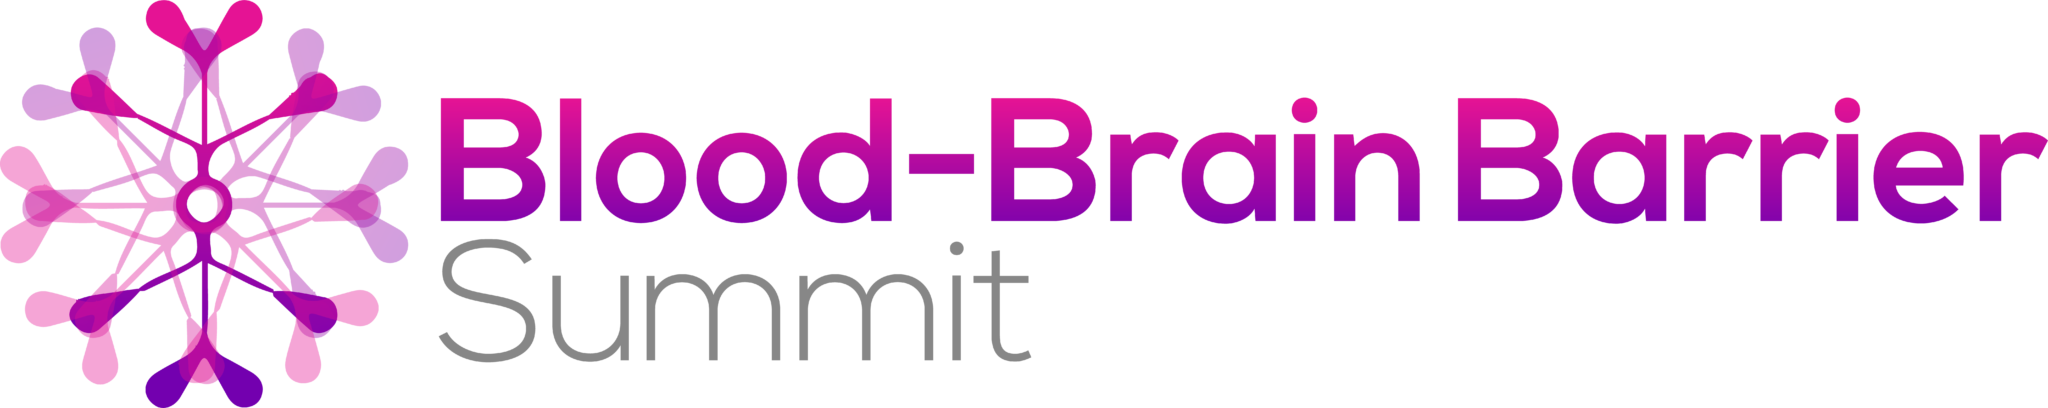 Blood-Brain Barrier Summit 2020 logo FINAL